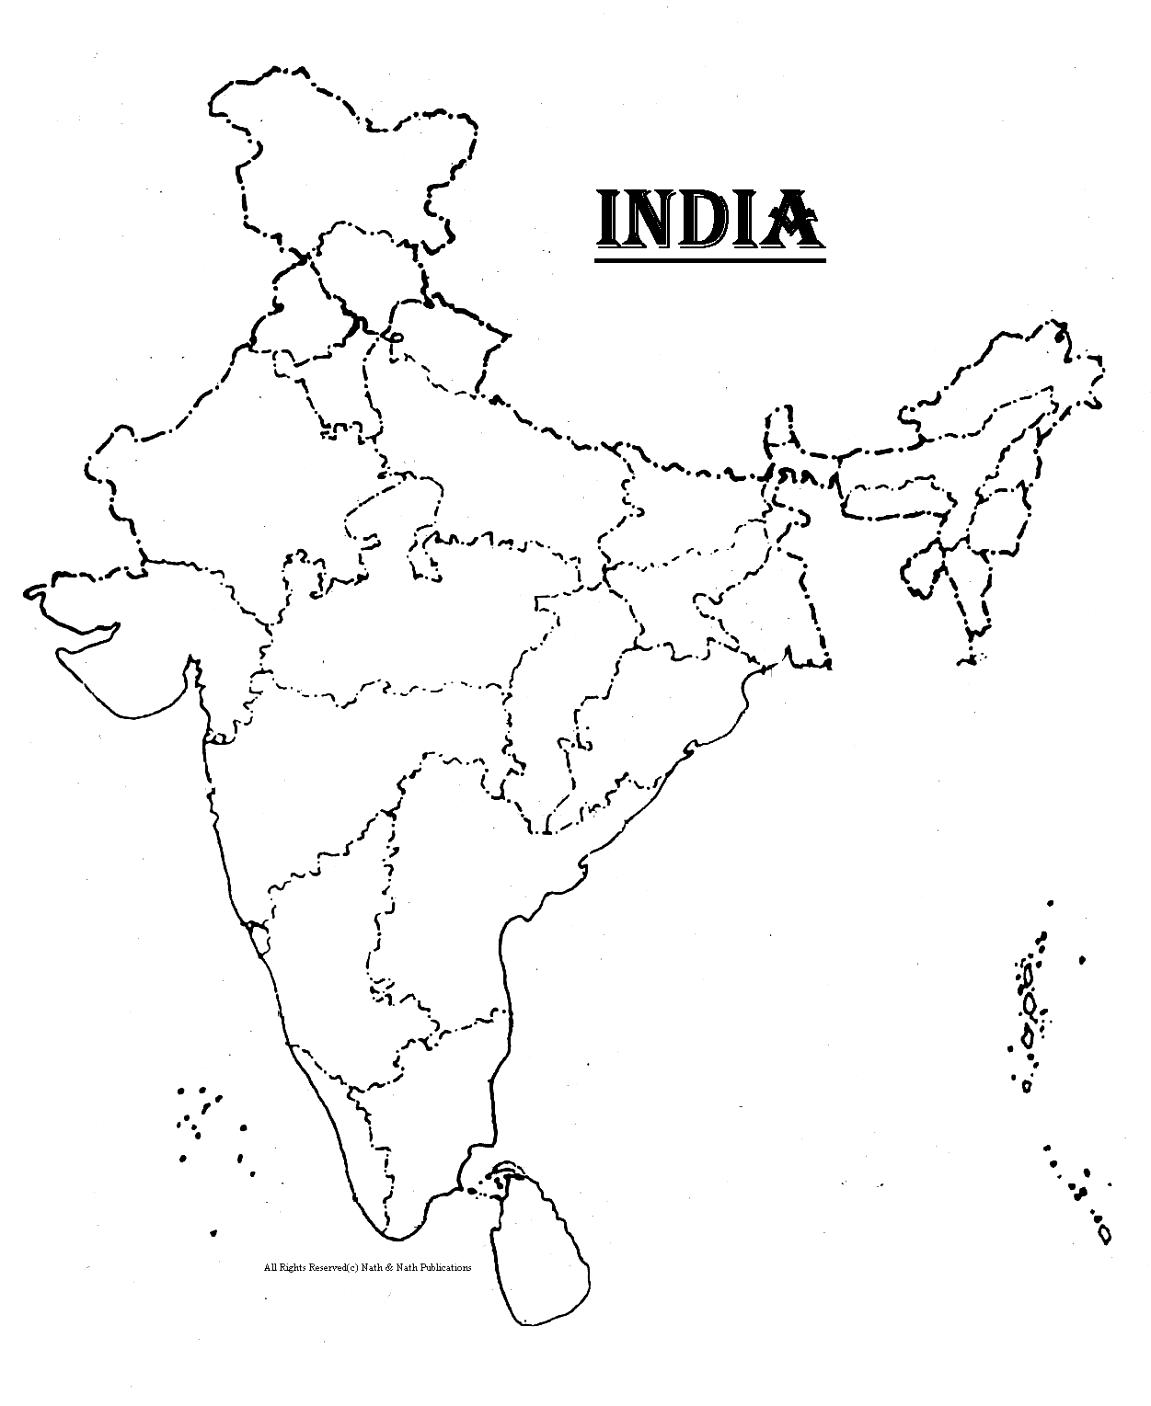 Ancient India Map Worksheet Key.The Best Free India Coloring Page Images Download From 50 Free